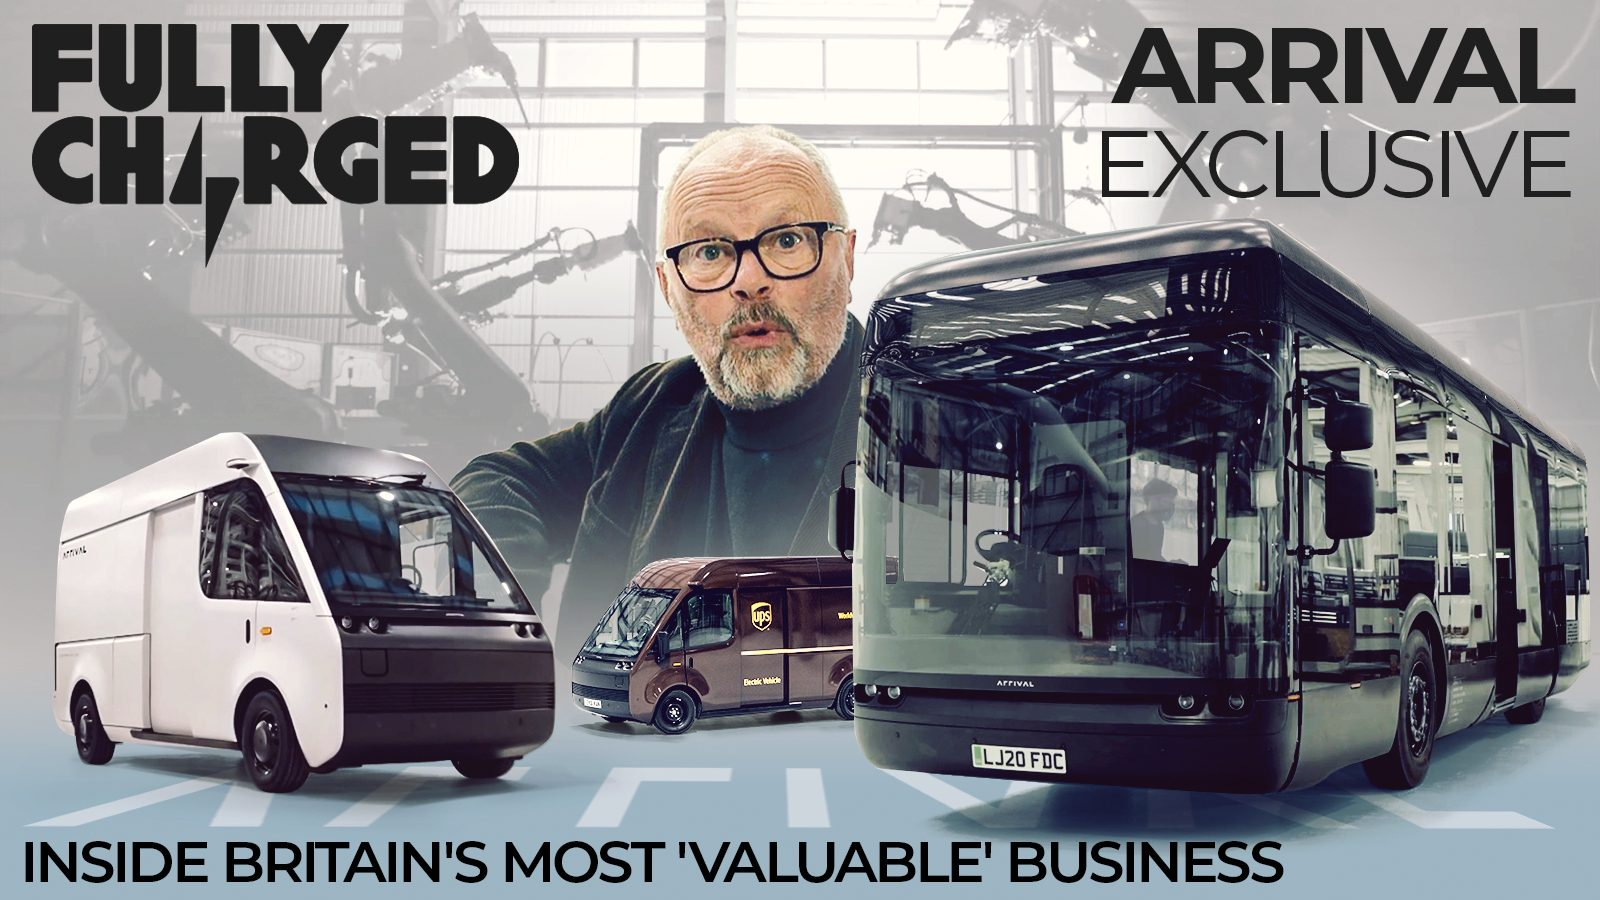 ARRIVAL Exclusive – Inside Britain's most 'valuable' business | FULLY CHARGED